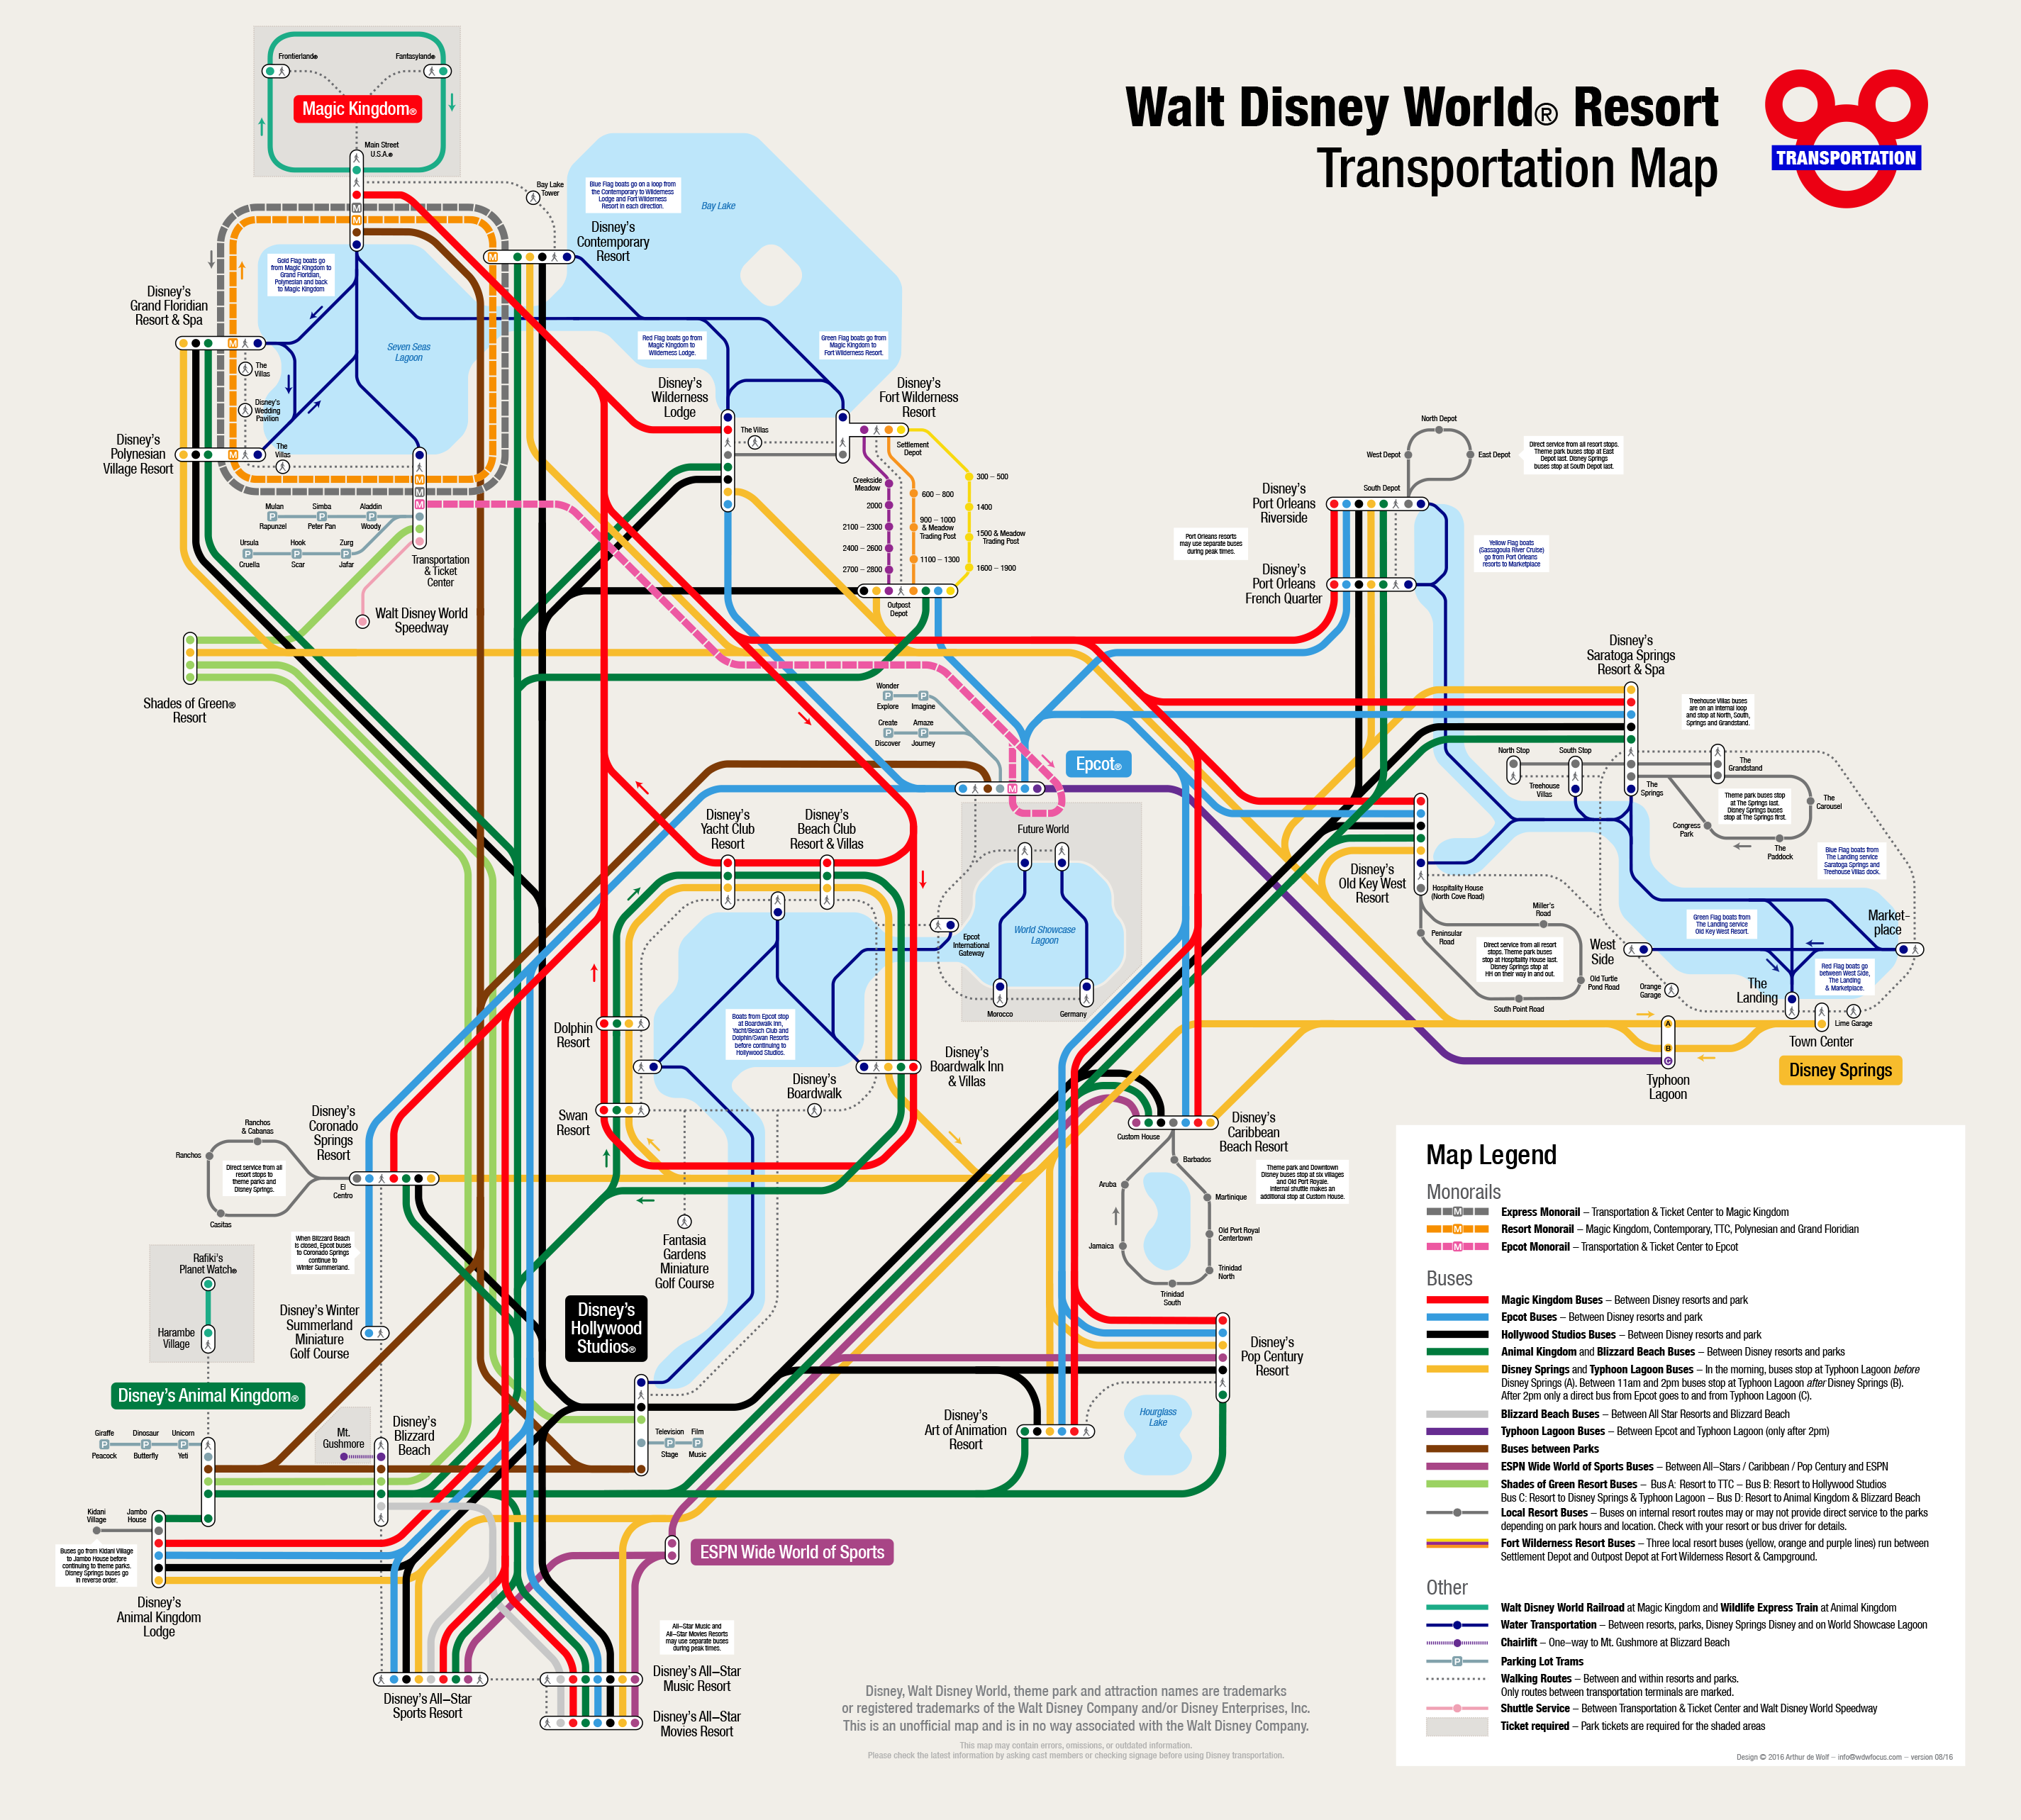 WDW Transportation Map | Walt Disney World | Disney world ...